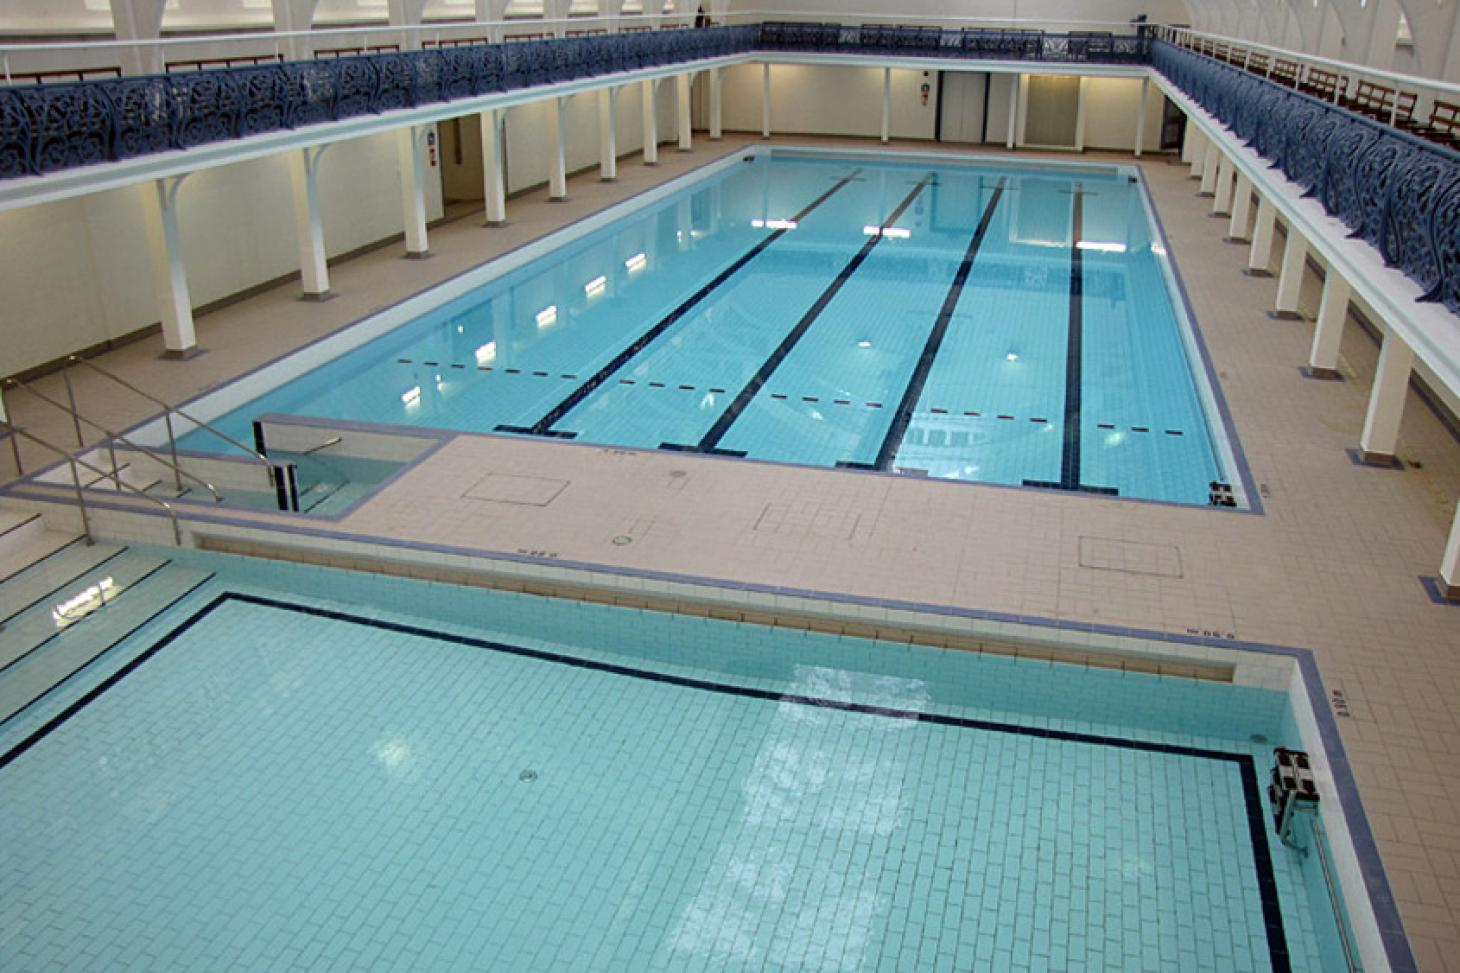 Camberwell Leisure Centre Indoor swimming pool